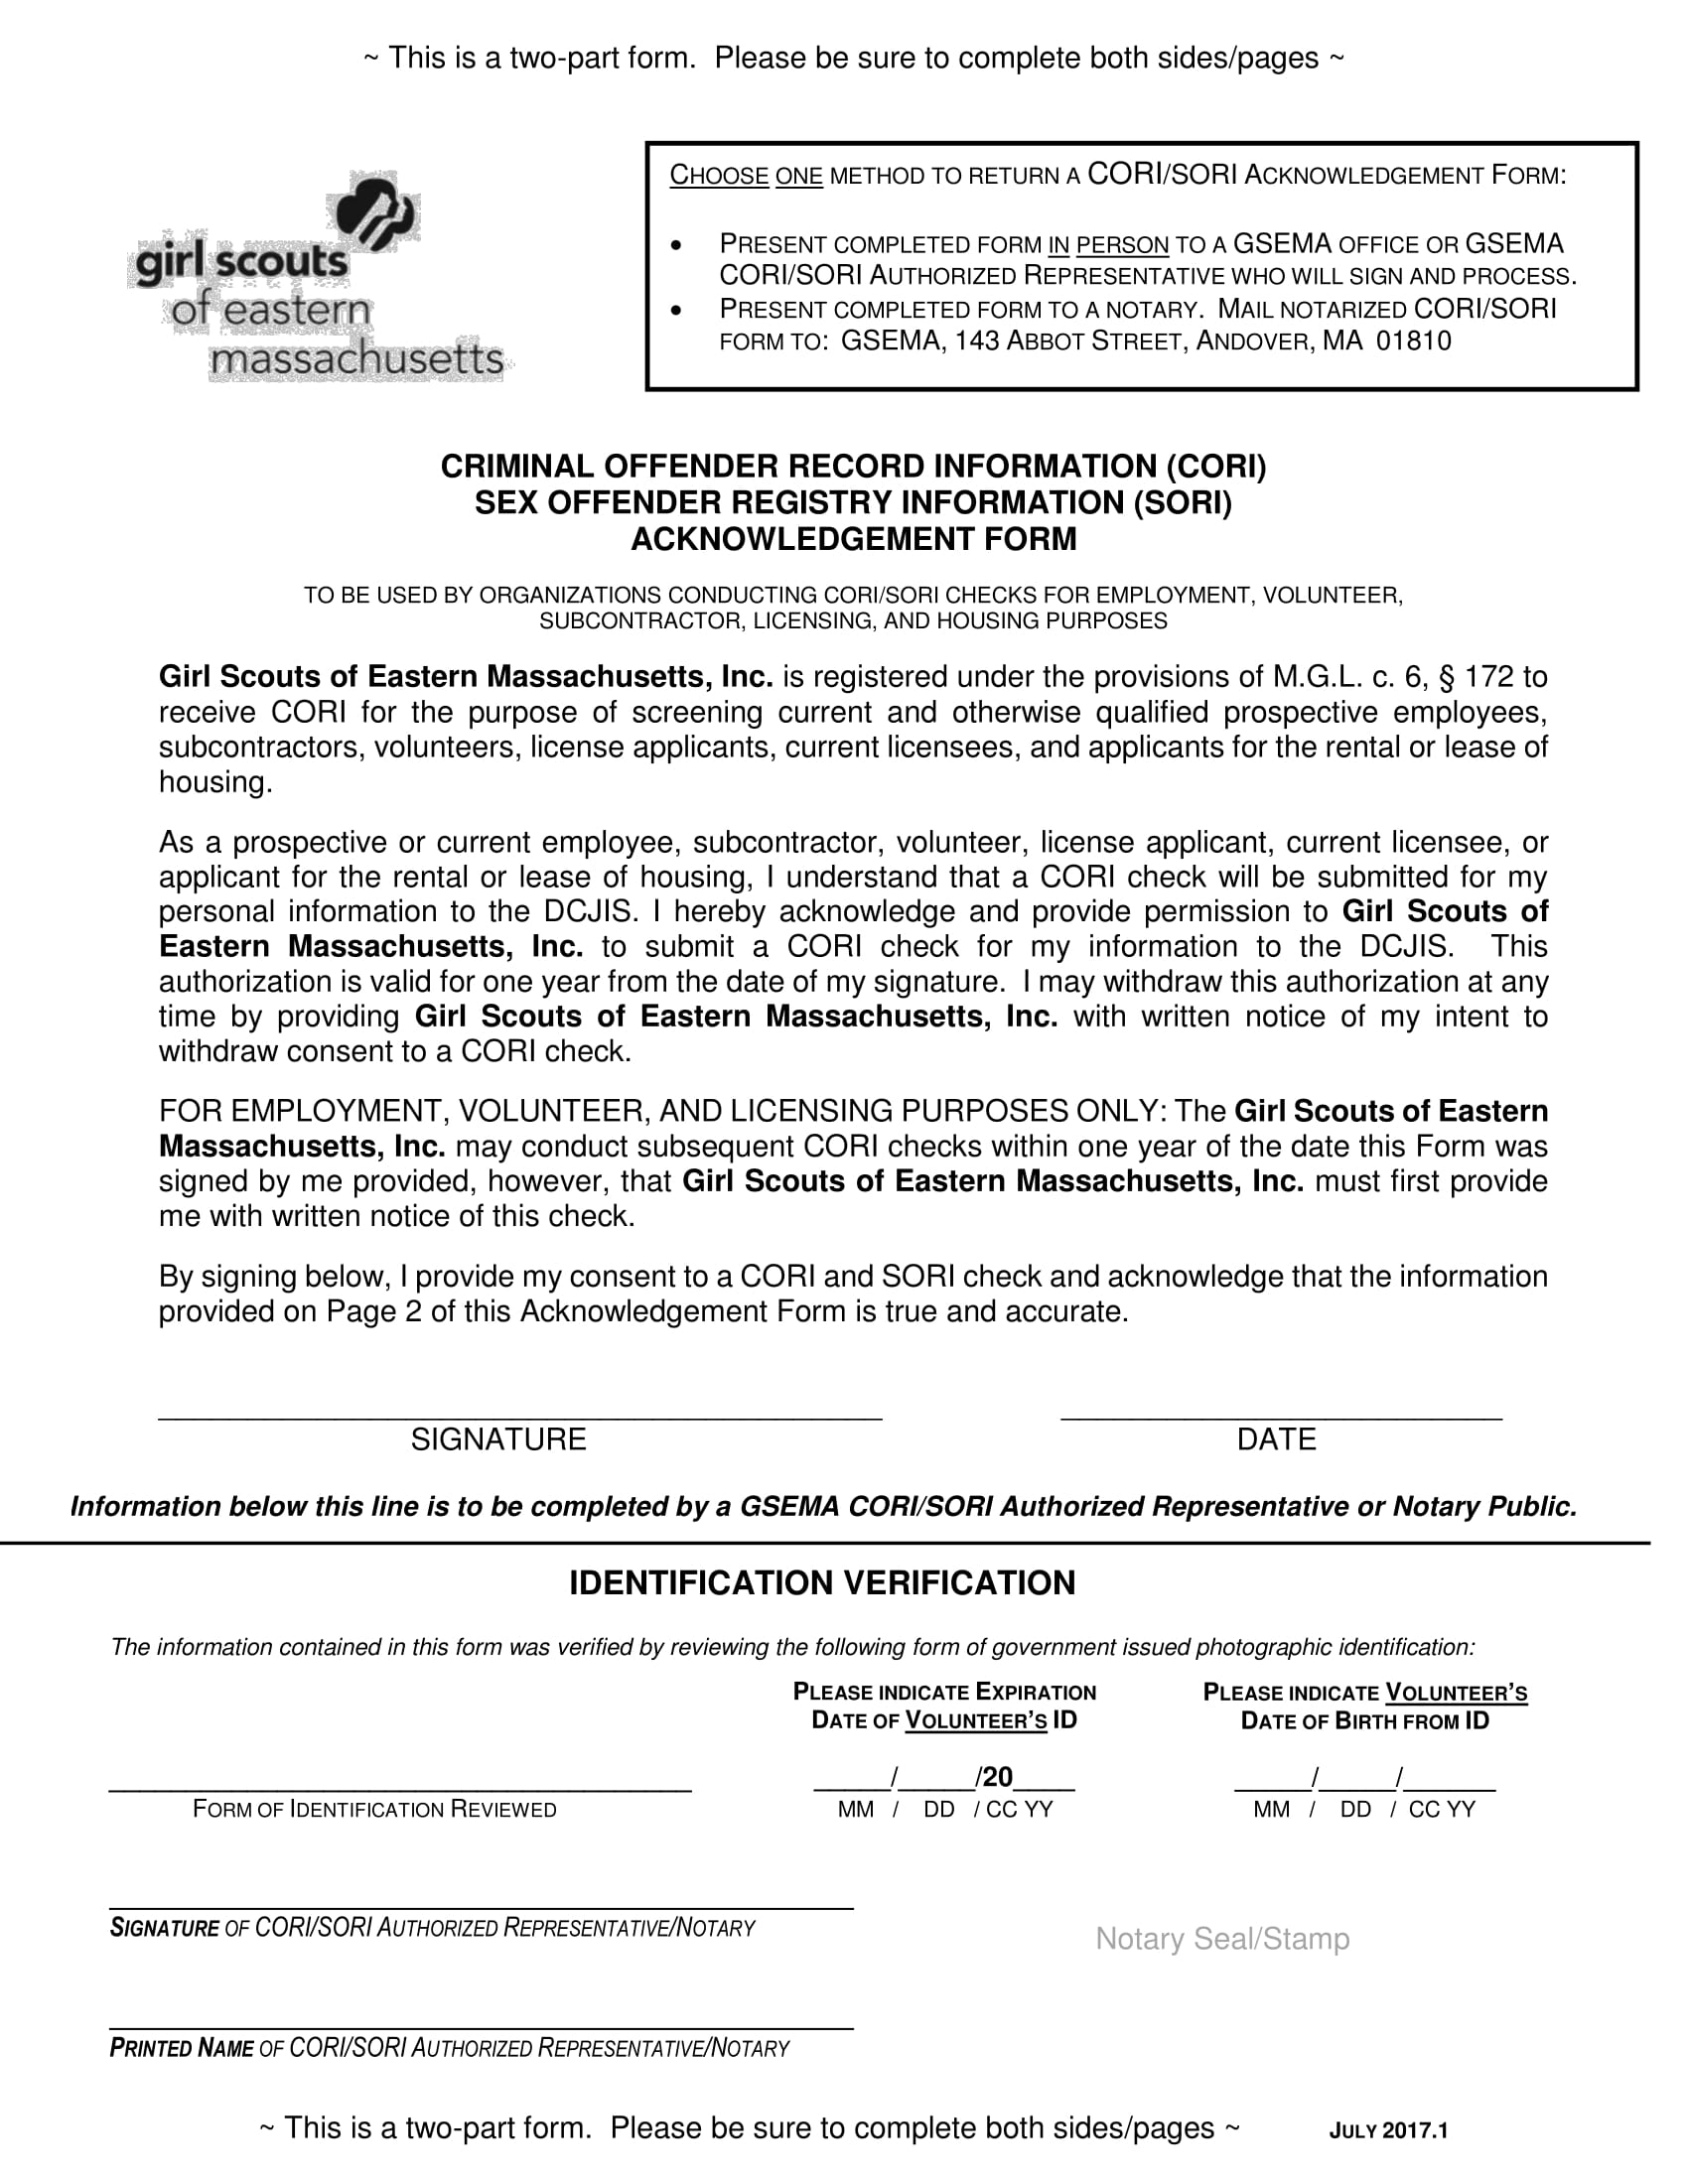 girl scouts identification verification form 1